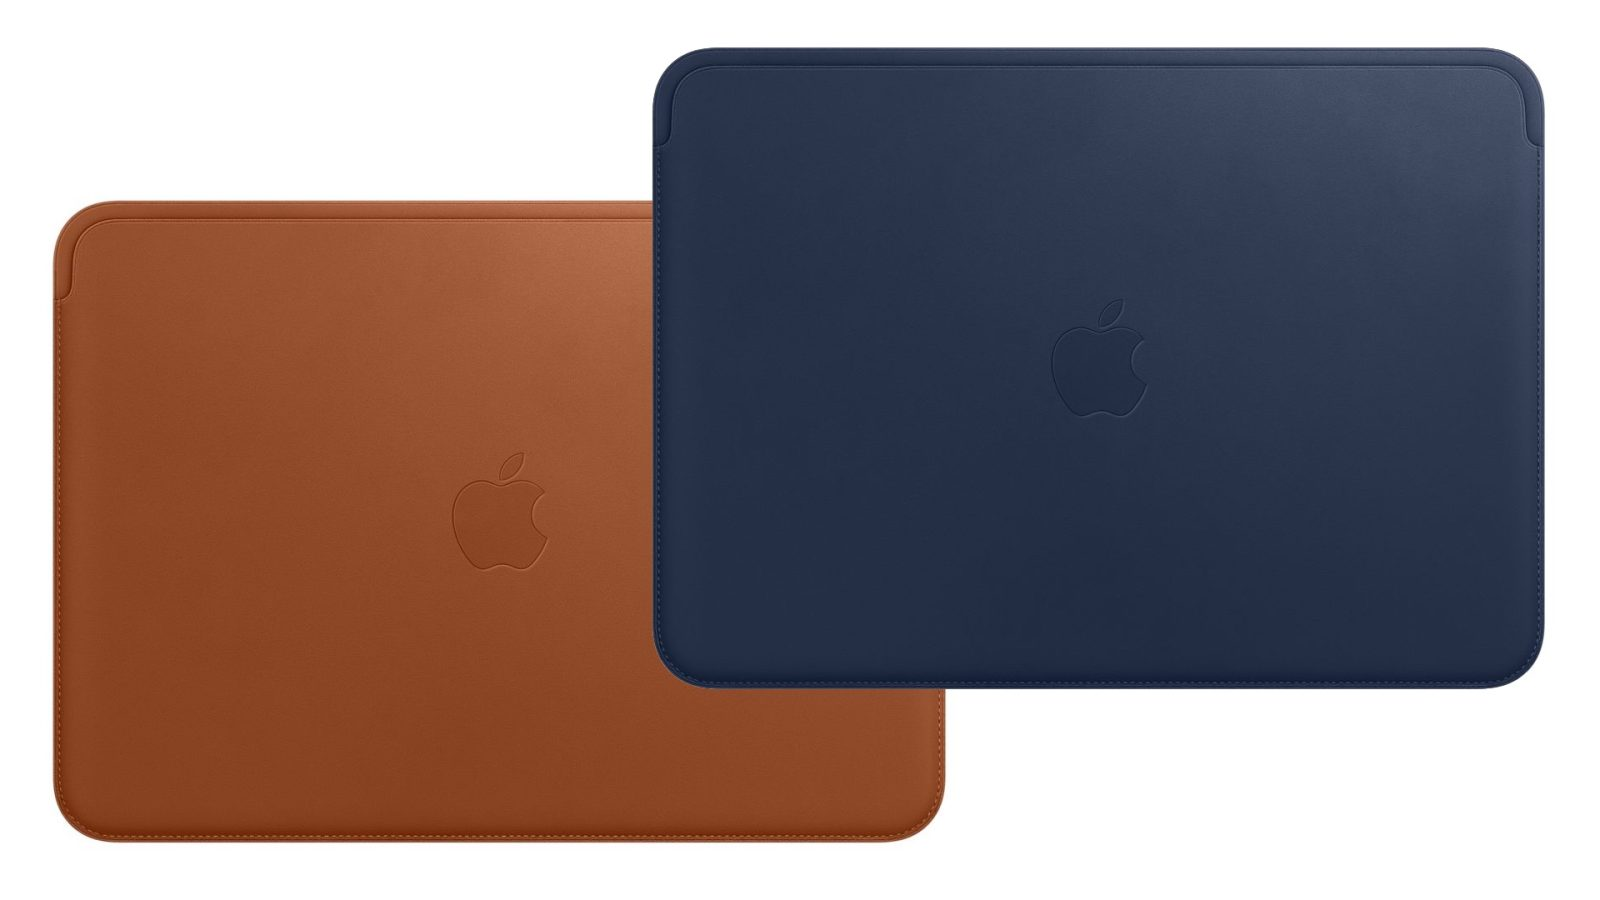 reputable site 1455b d4ffe Apple launches new 12-inch MacBook Leather Sleeve - 9to5Mac